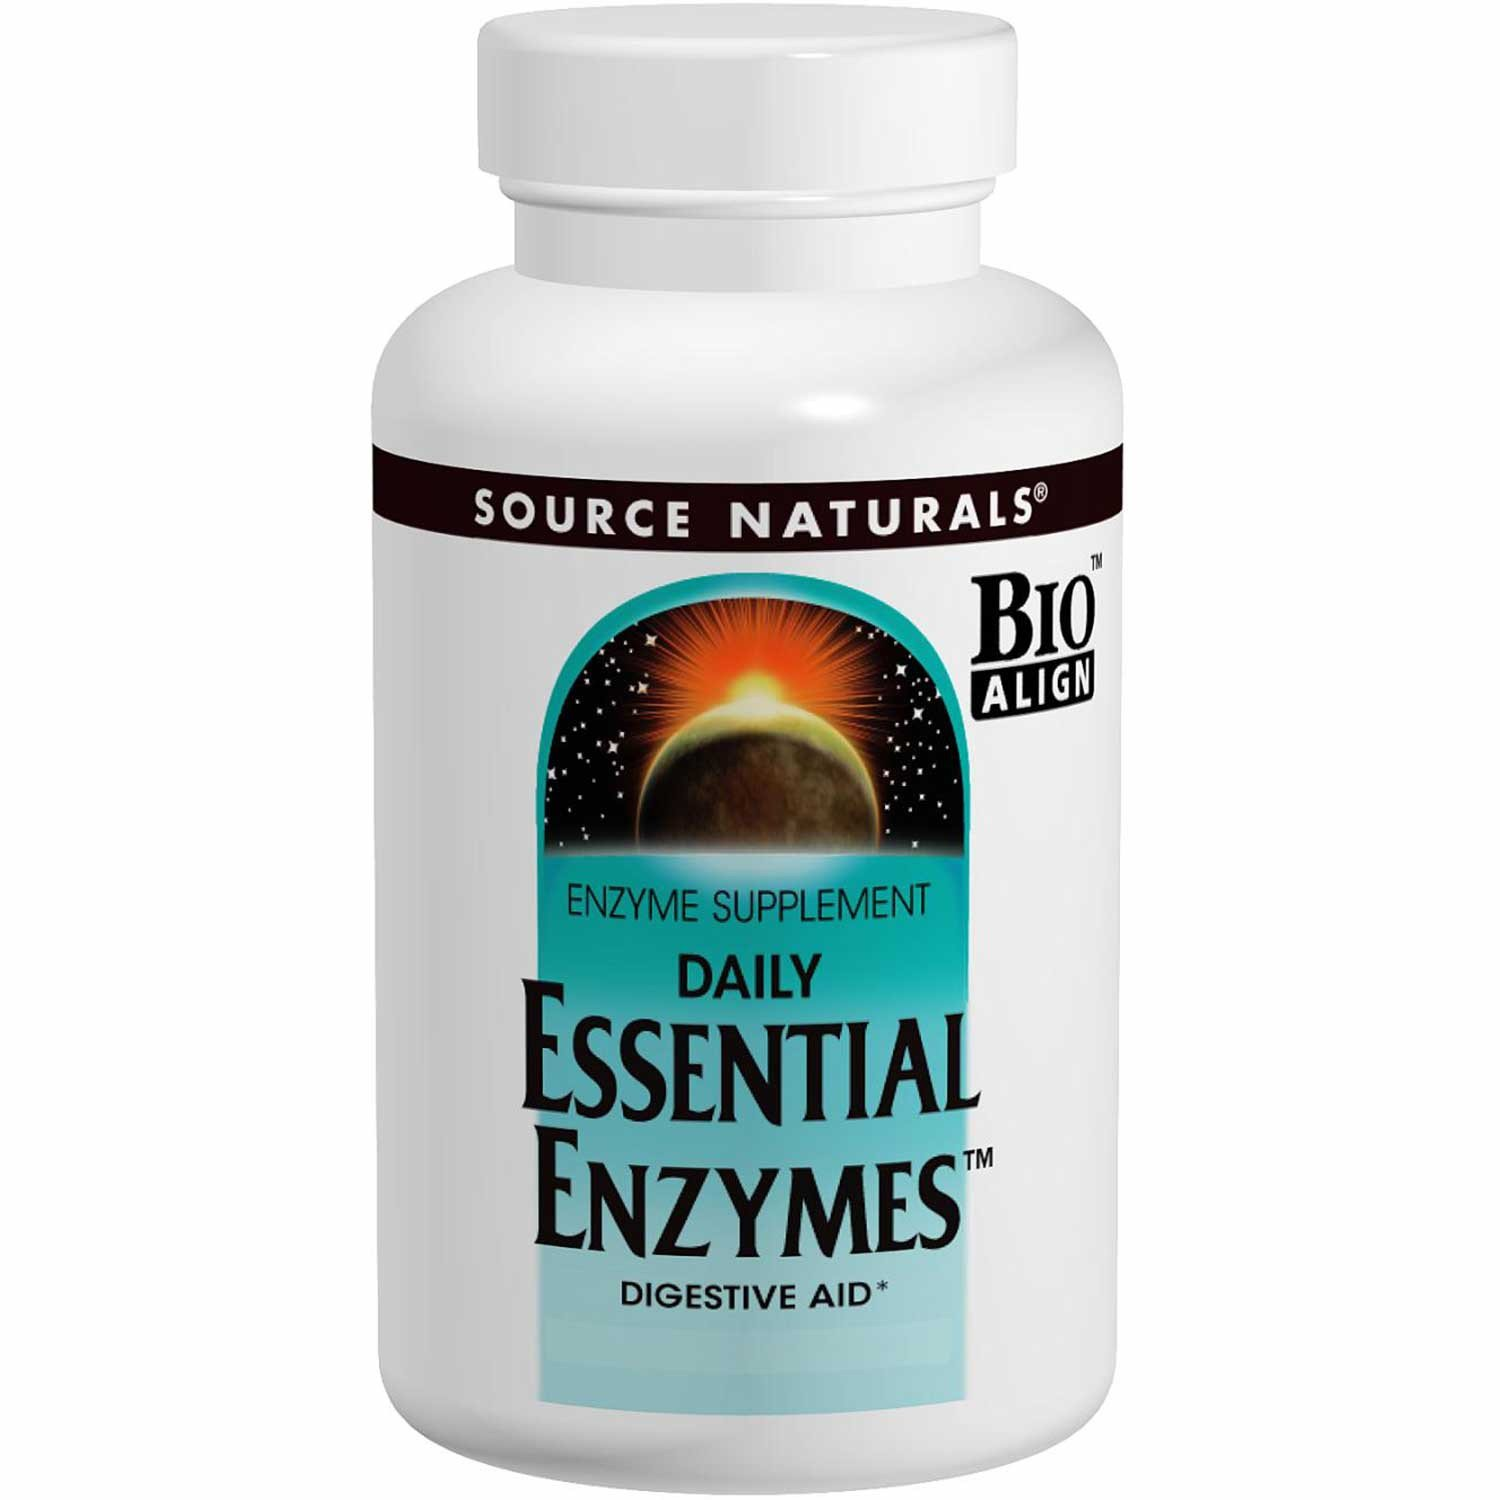 Source Naturals Daily Essential Enzymes, 120 vcaps